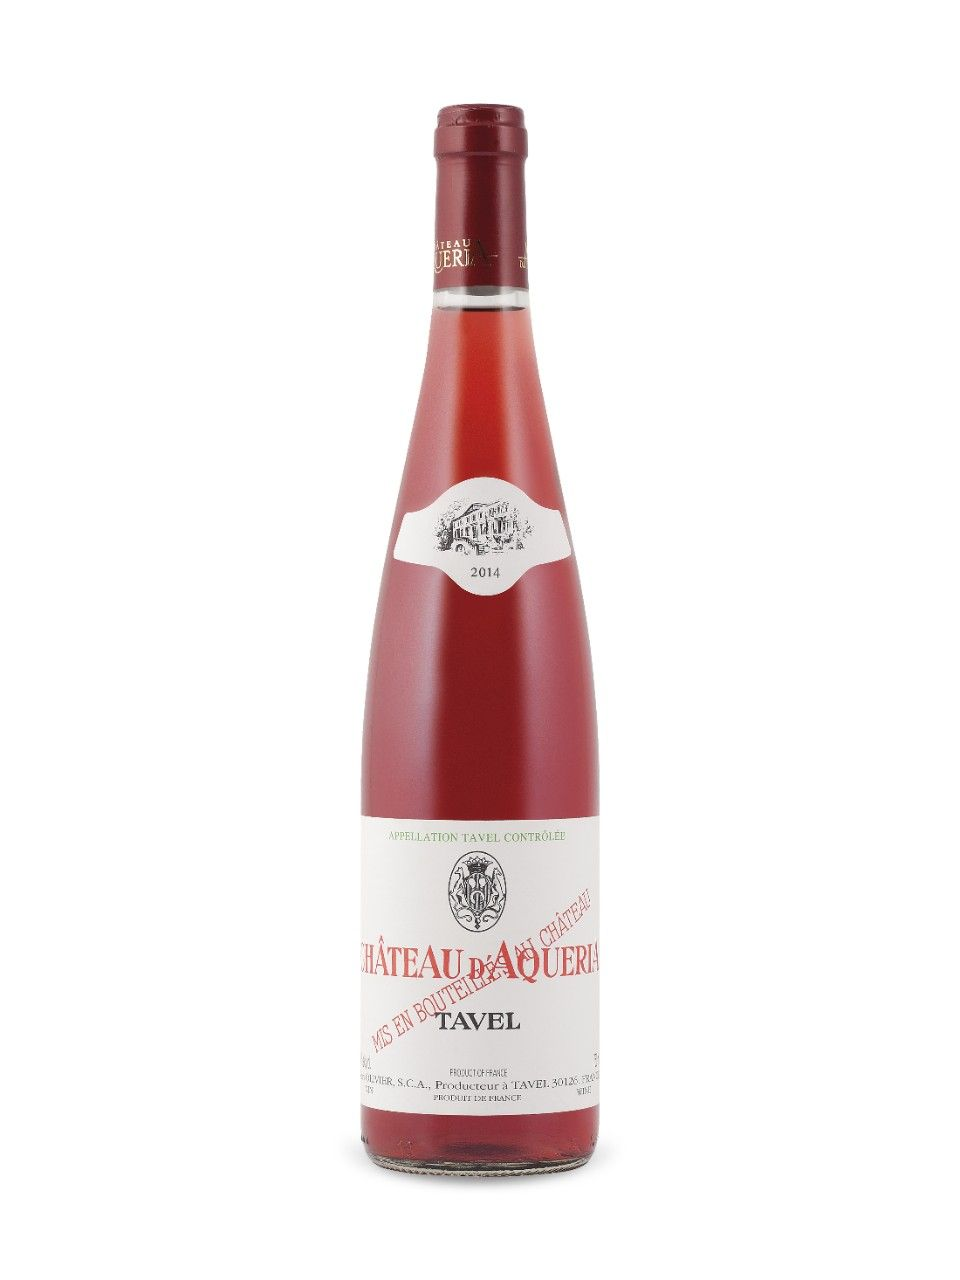 Chateau D Aqueria Tavel Rose 2014 Rhone A C France Natalie S Score 91 100 Http Www Nataliemaclean Com Wine Reviews Ch Wine Wine Bottle Wine Label Maker